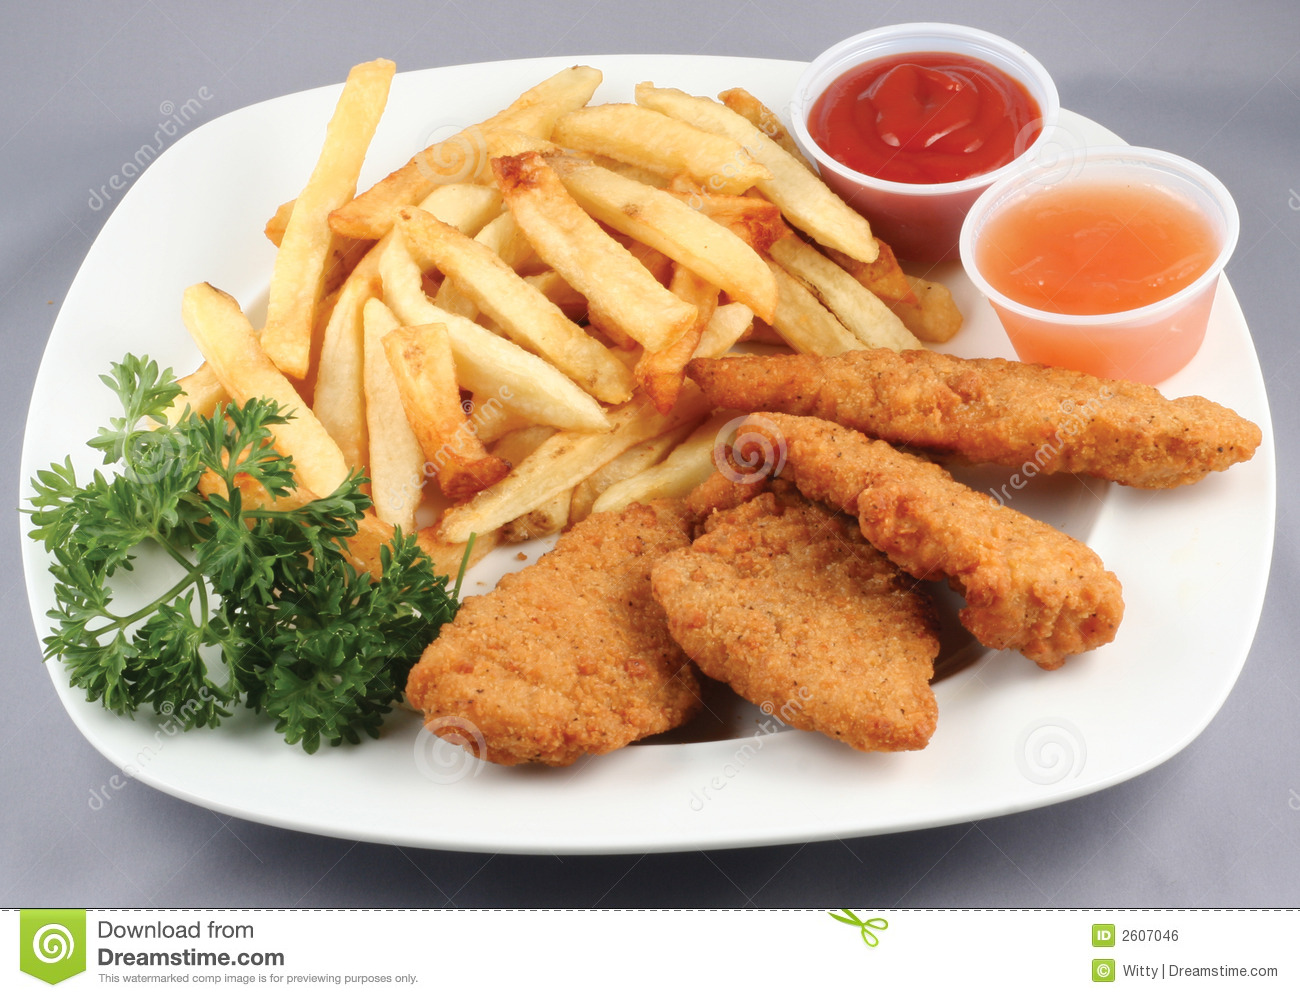 Chicken Tenders And Fries Clipart